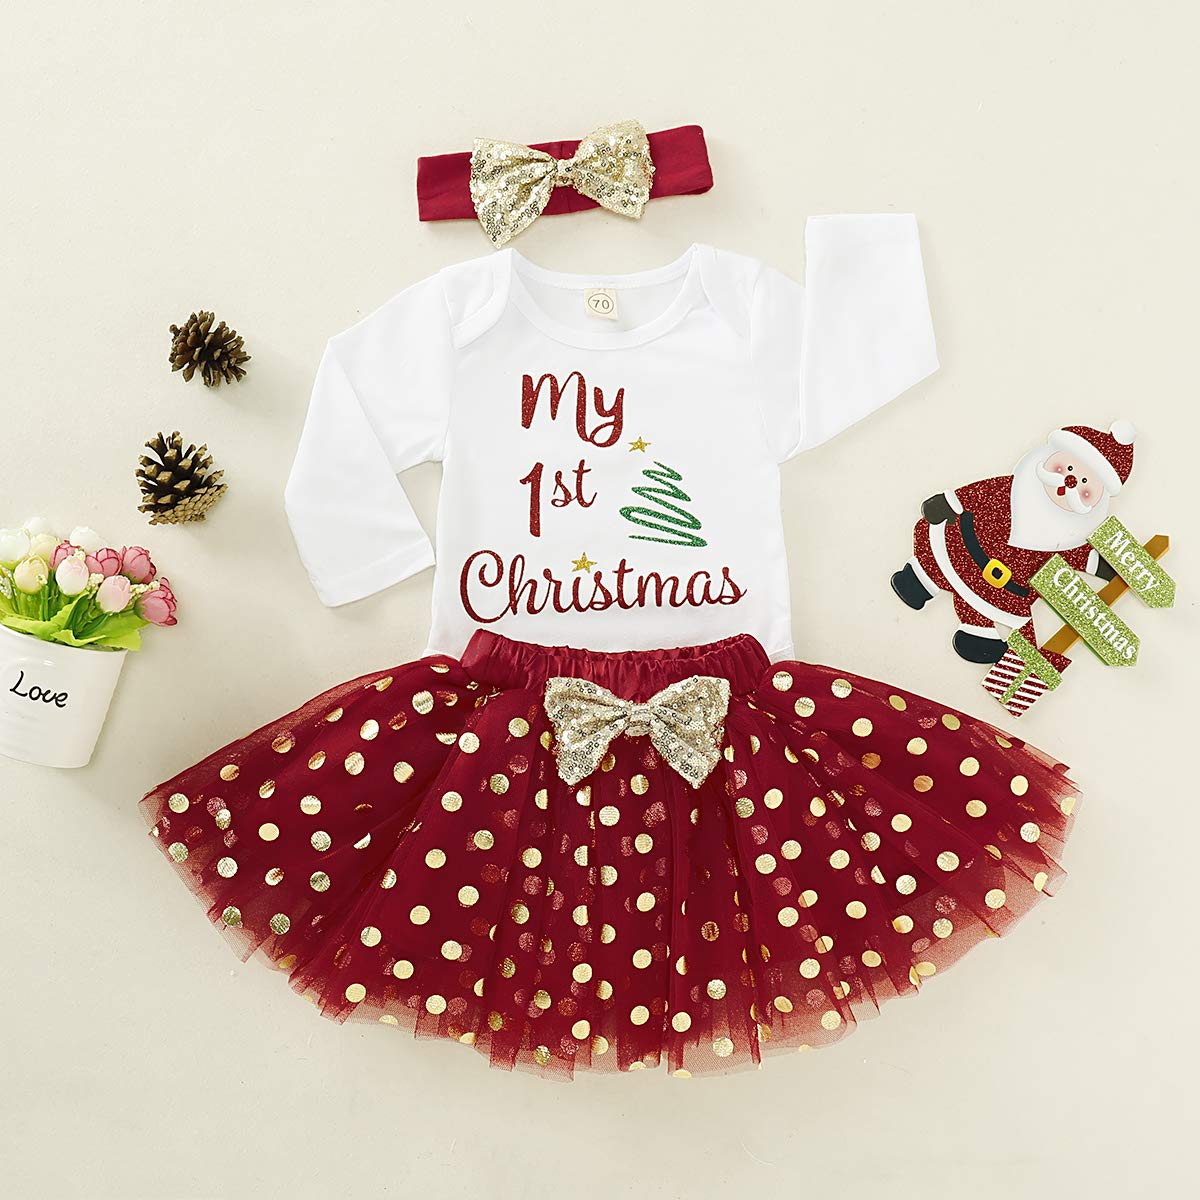 My First Christmas Outfit Toddler Baby Girls Clothes Rompers Red Gird Skirt Outfit